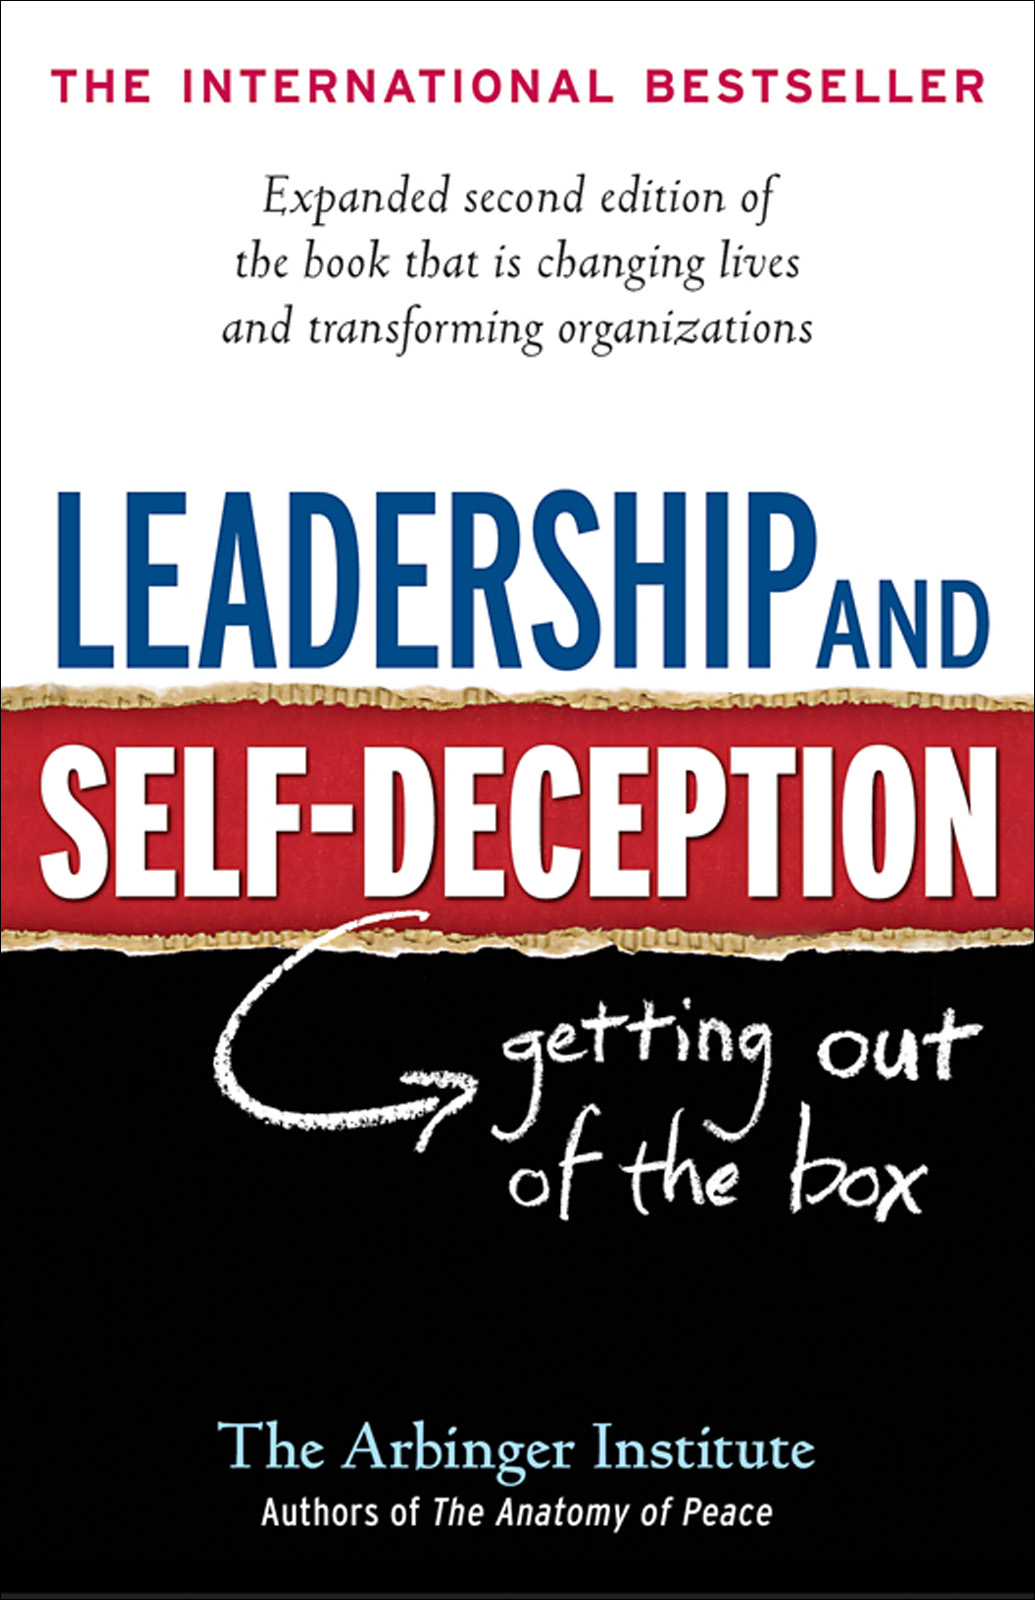 Leadership and Self-Deception. Getting out of the Box